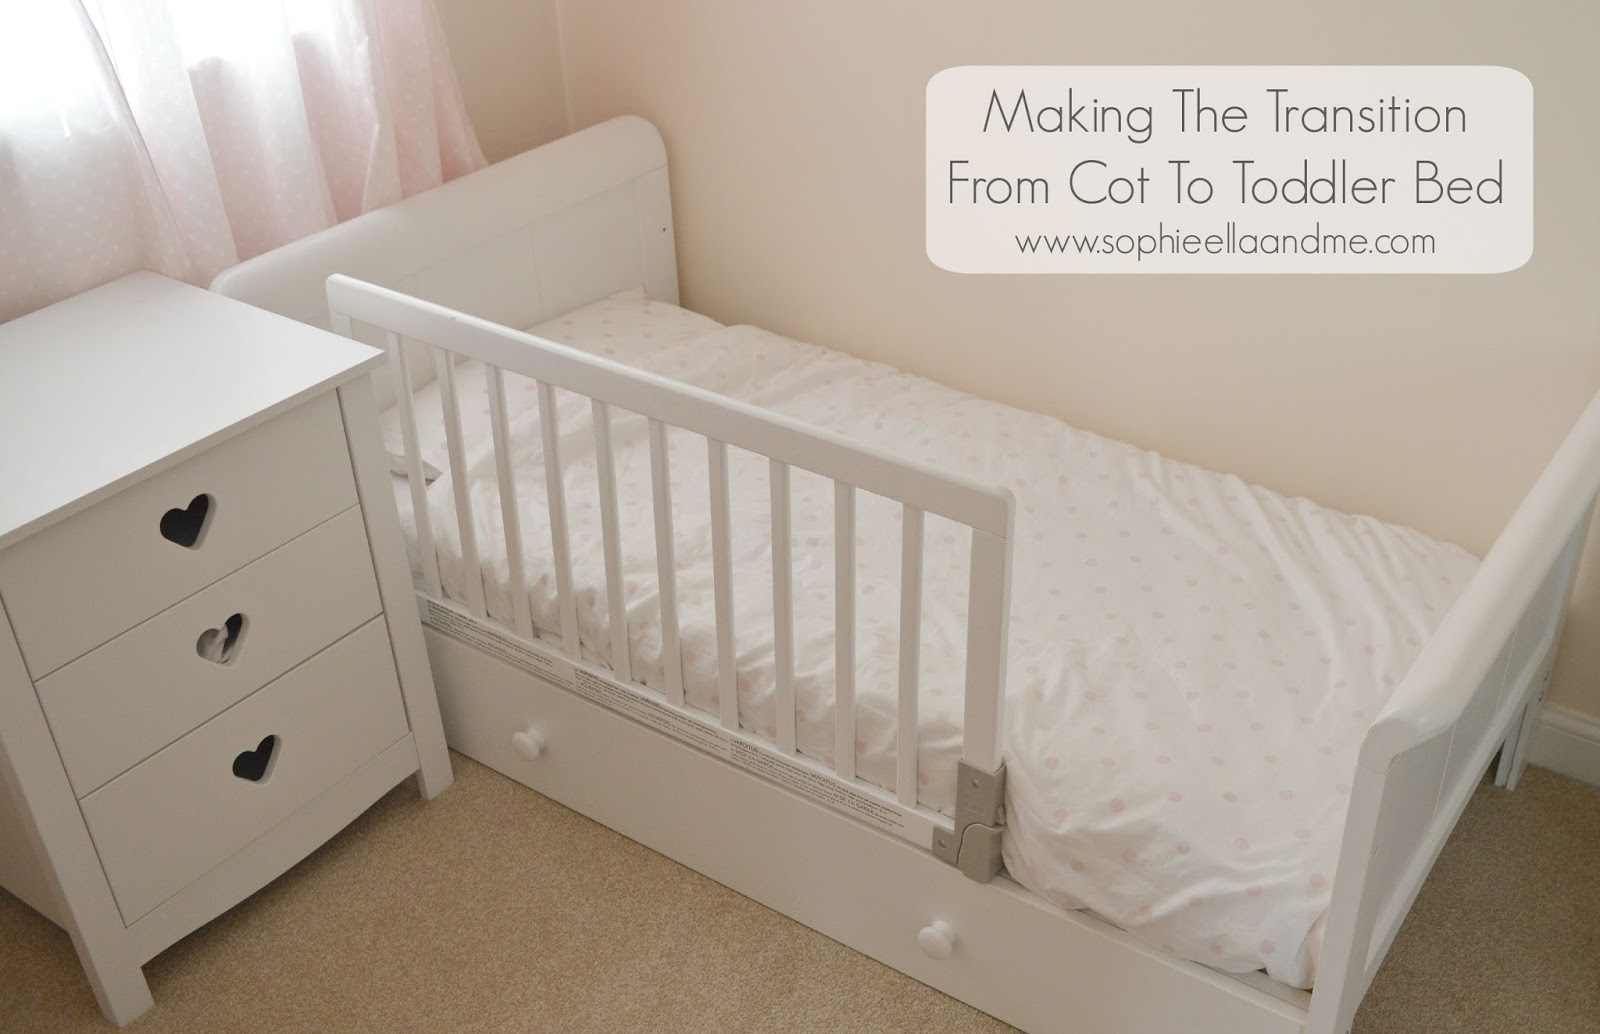 Cots for 1 year old making the transition from cot to toddler bed ZLFKVGN